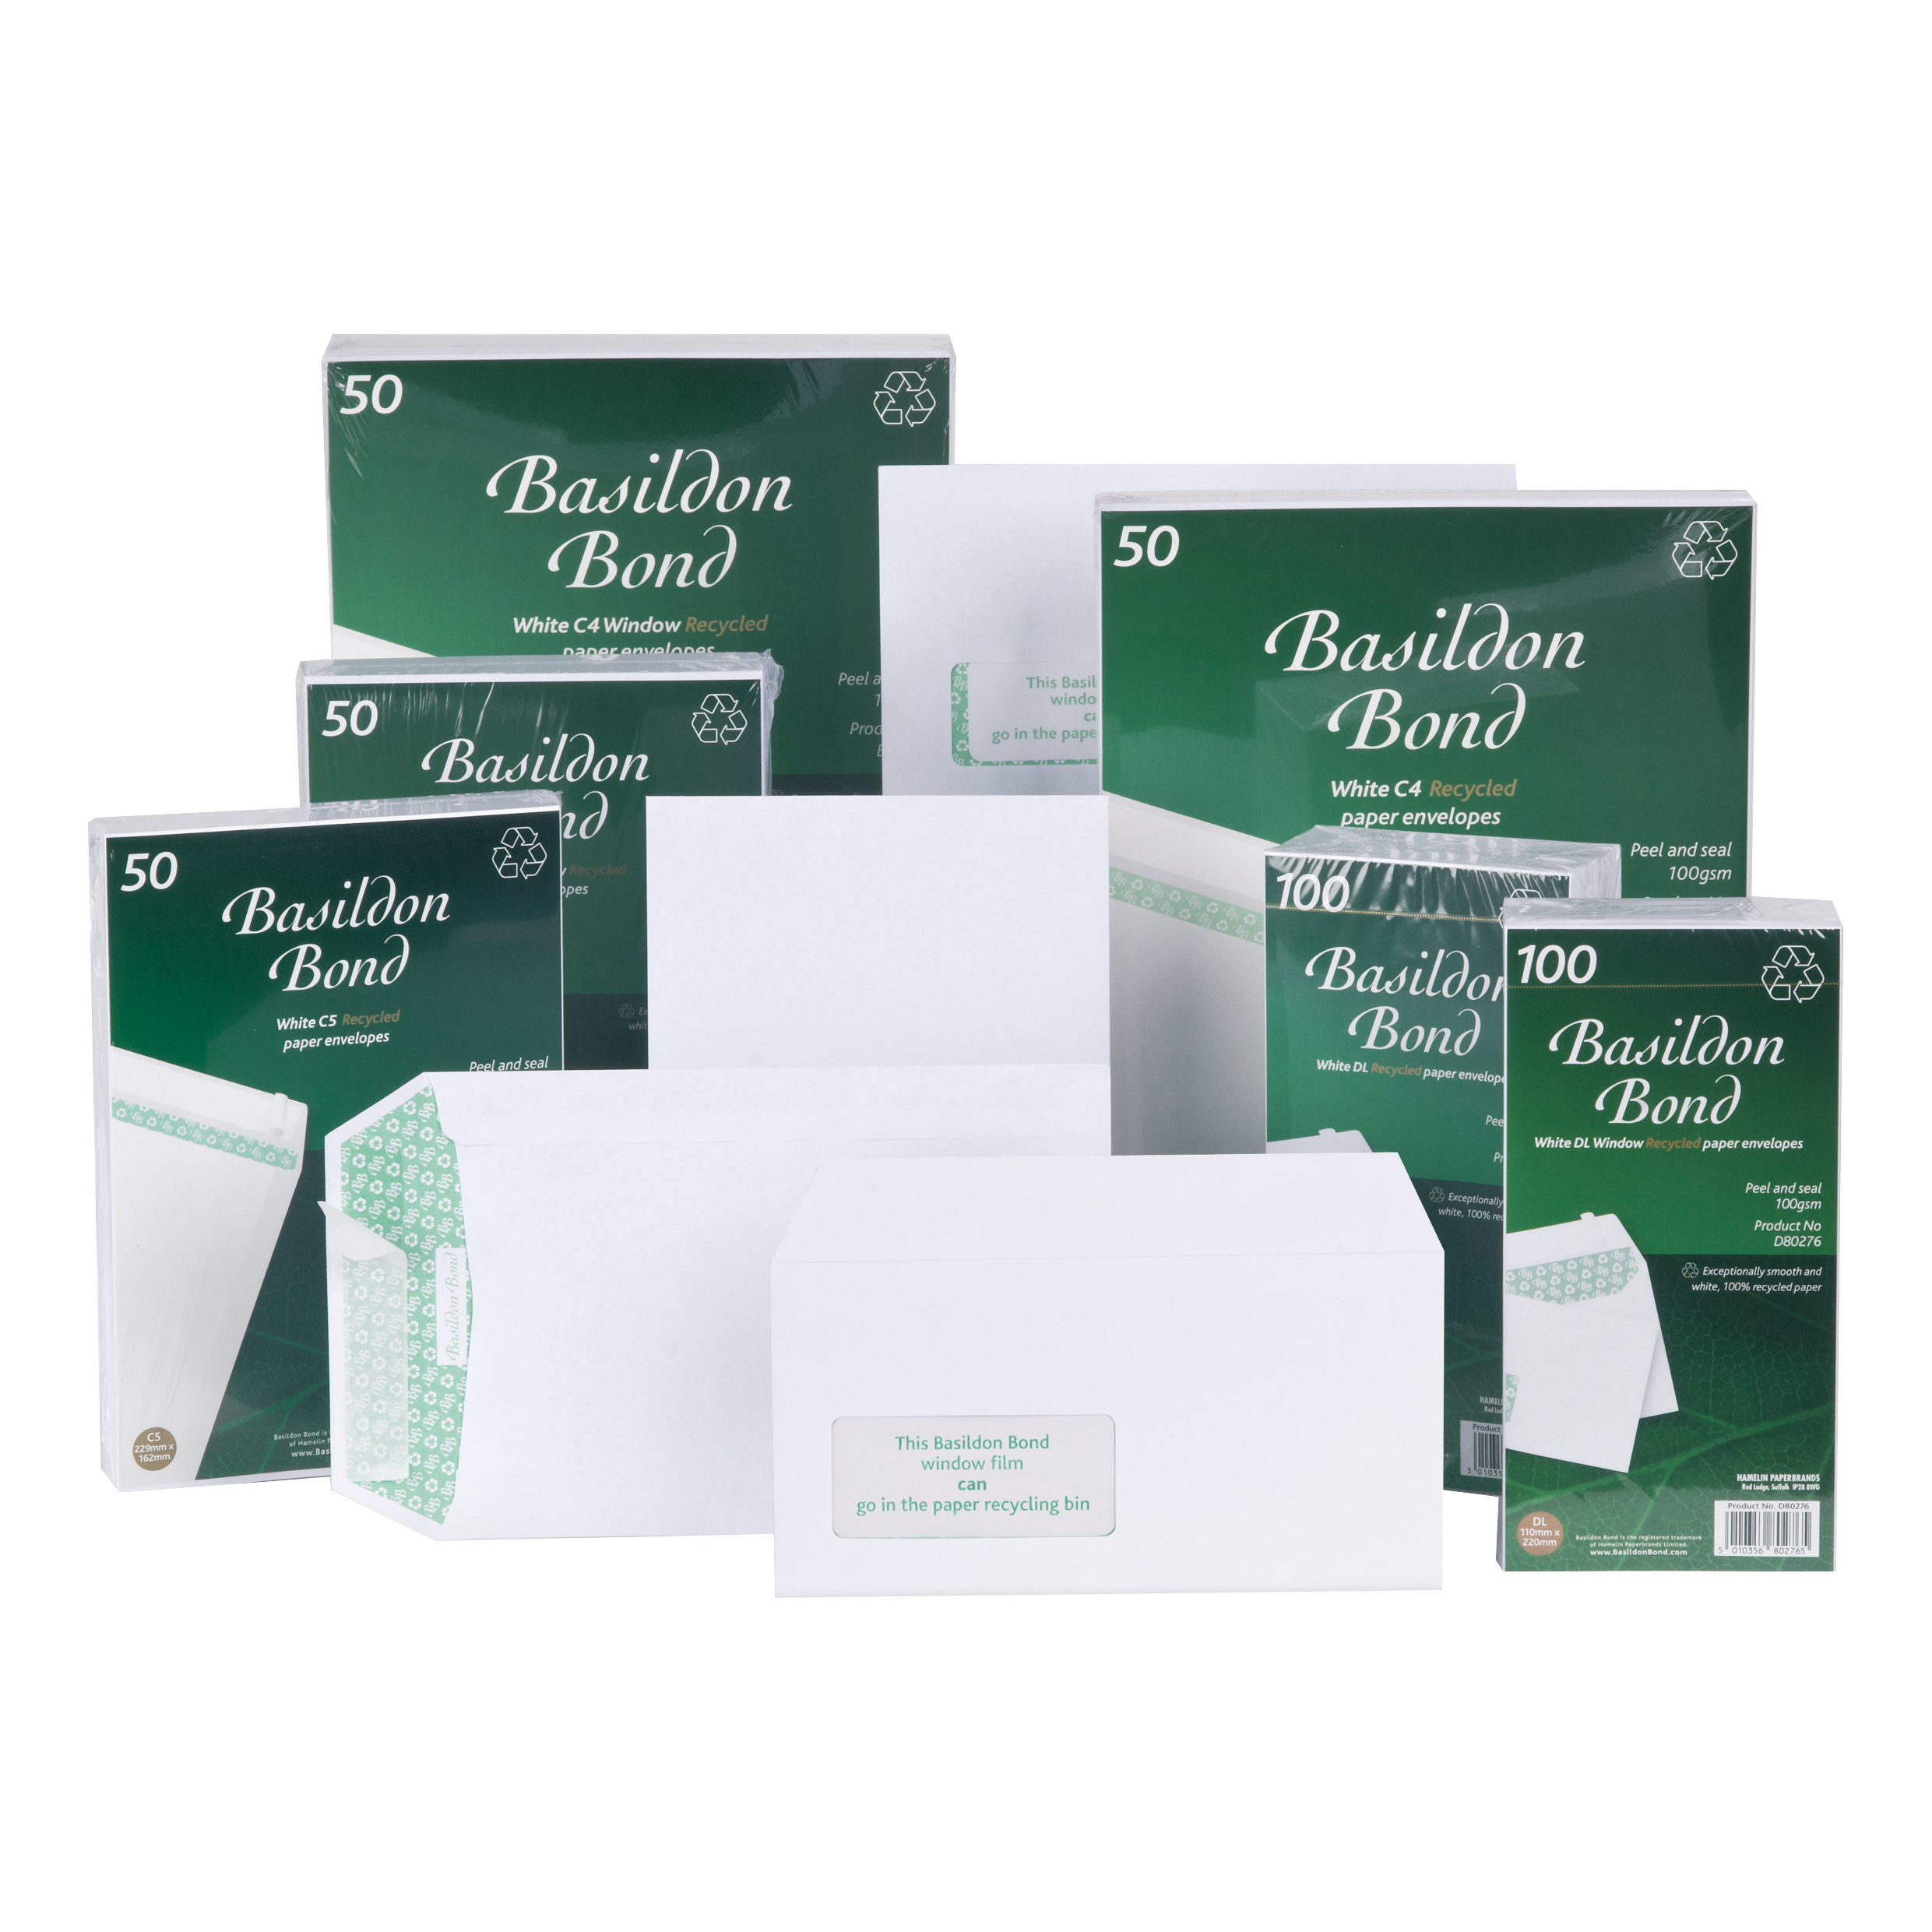 Standard envelopes Basildon Bond Envelopes FSC Recycled Wallet Peel & Seal 120gsm DL 220x110mm White Ref F80275 Pack 100